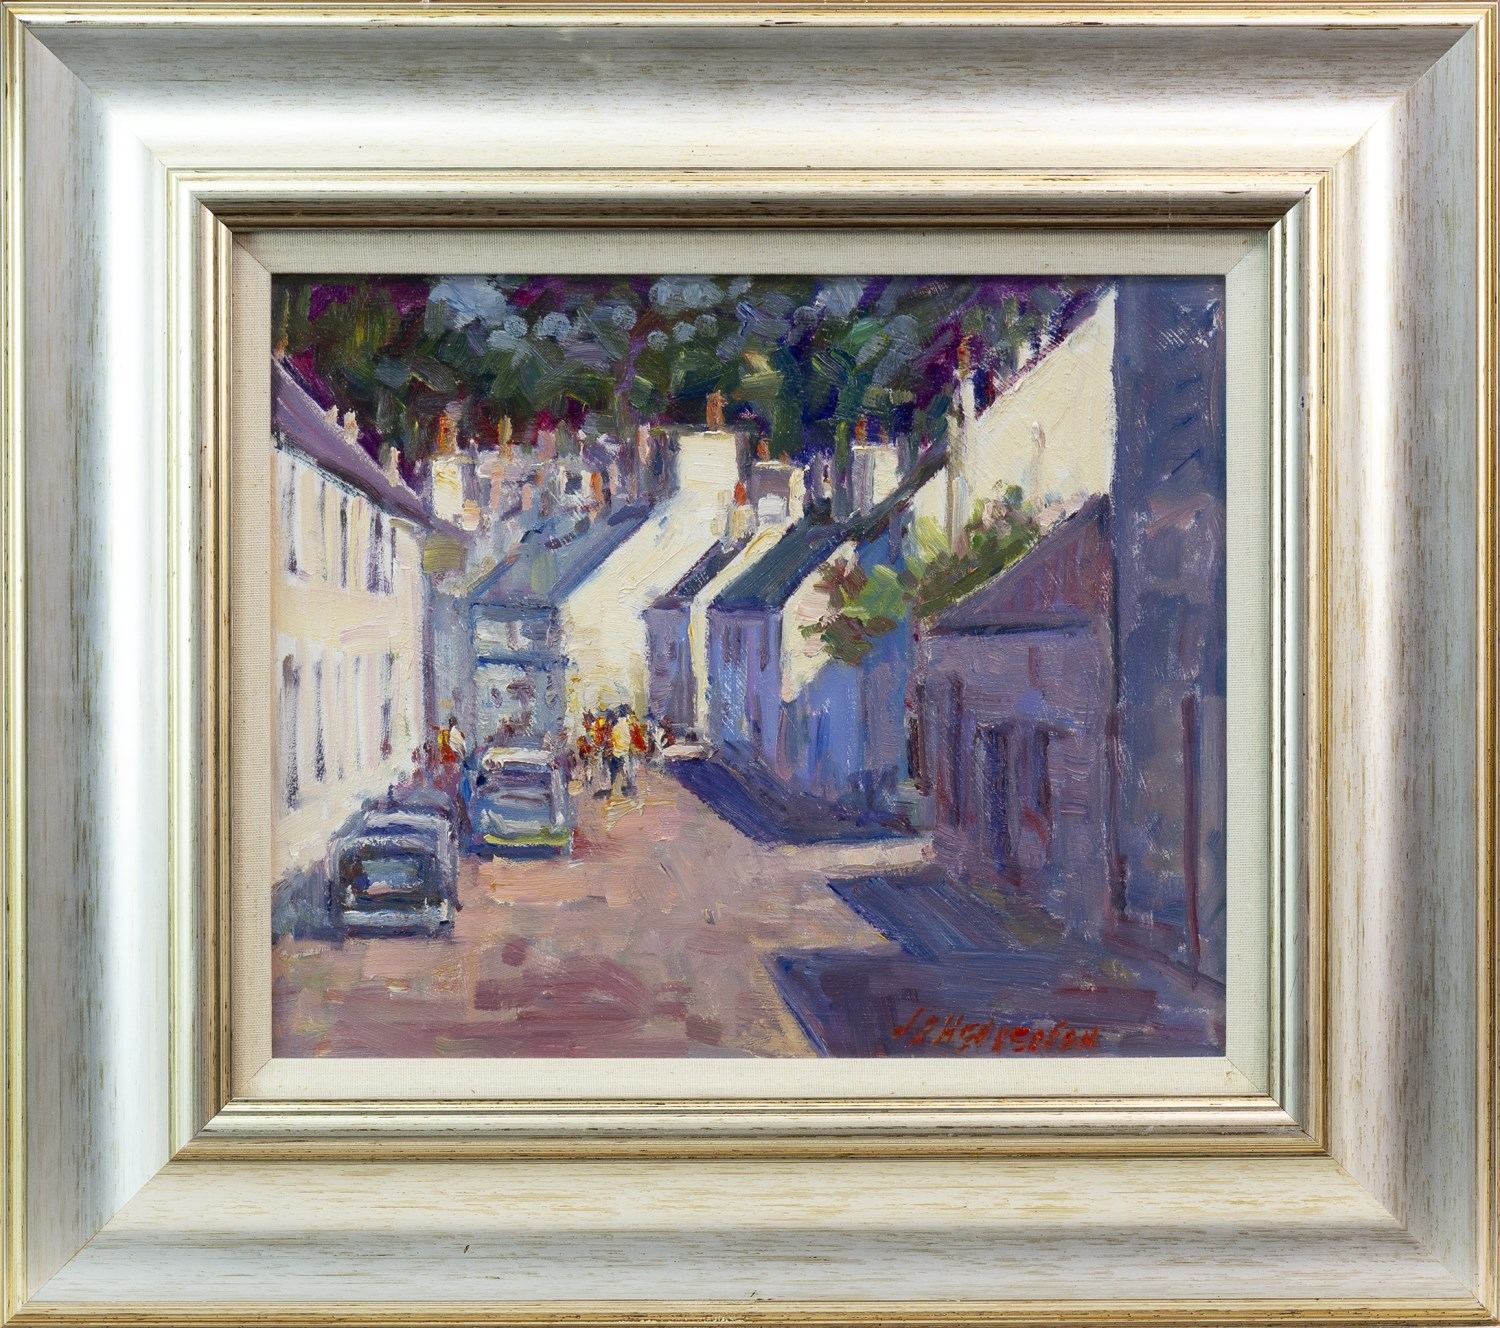 Lot 75 - DUNKELD COTTAGES, AN OIL ON BOARD BY JD HENDERSON